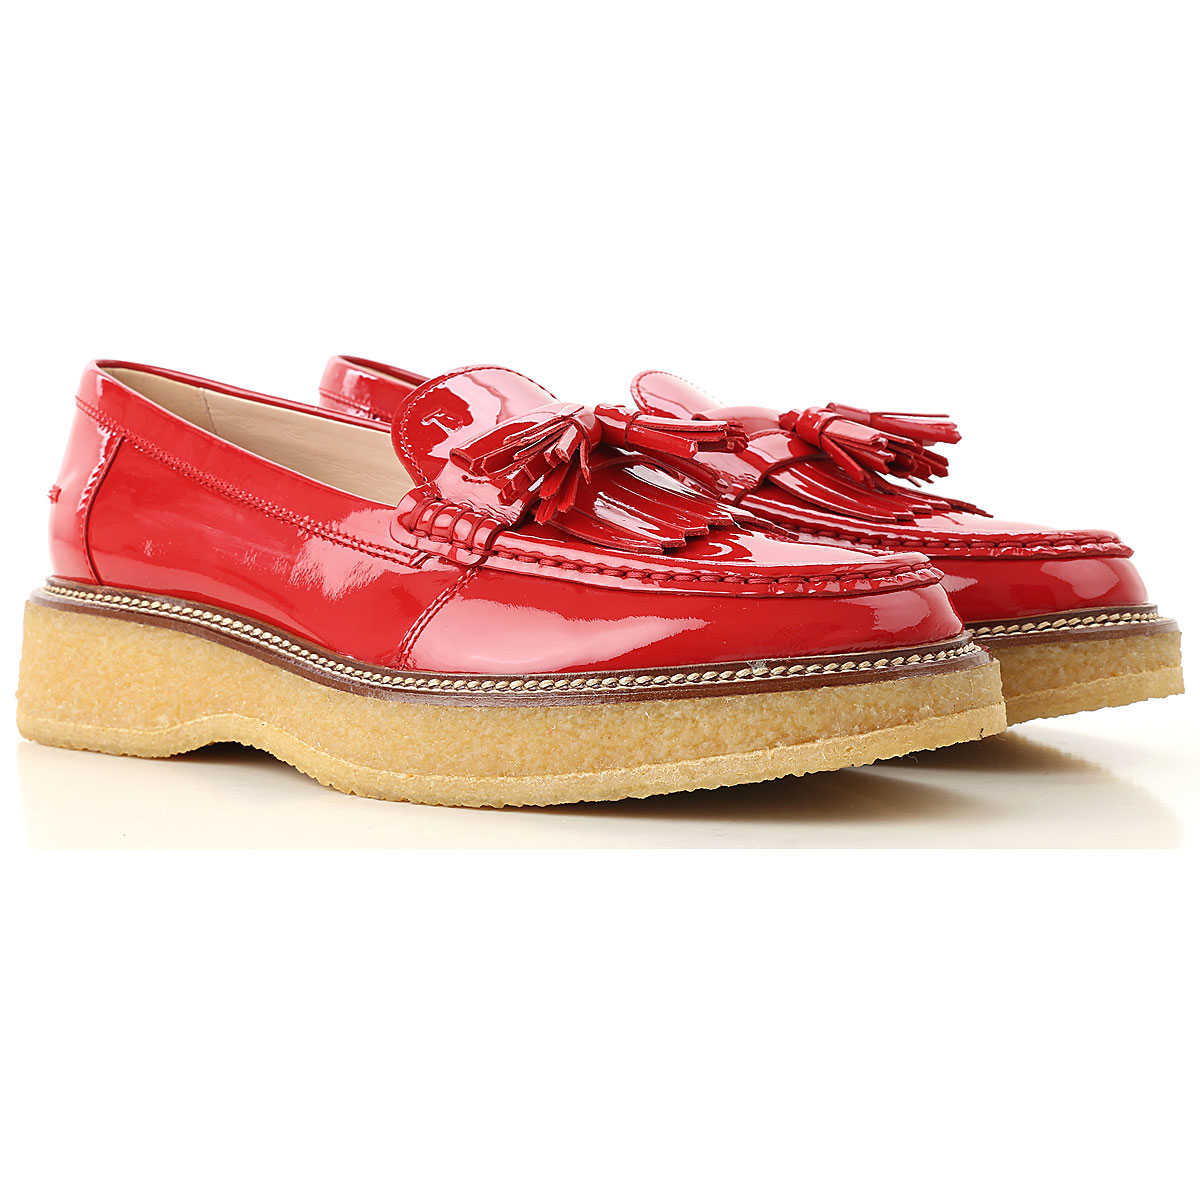 Tods Loafers for Women Ruby Red USA - GOOFASH